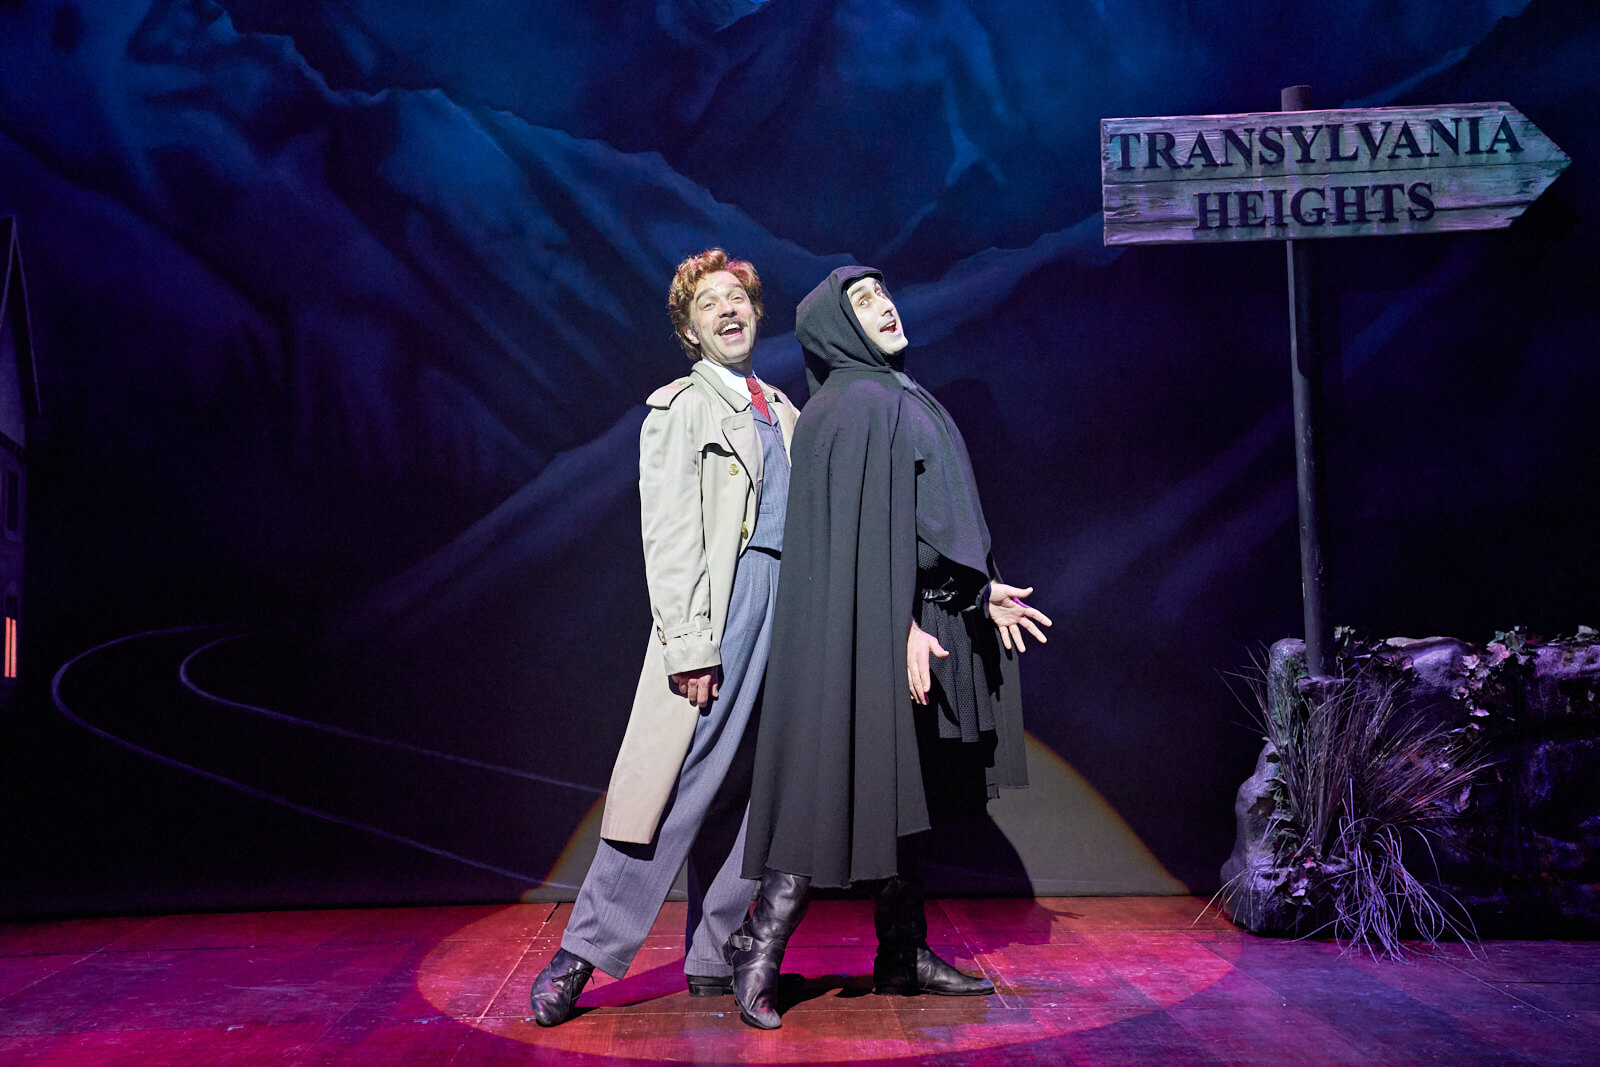 """Dr. Frankenstein (Hadley Fraser) and Igor (Ross Noble) sing """"Together Again"""". They are on their way to Transylvania Heights."""